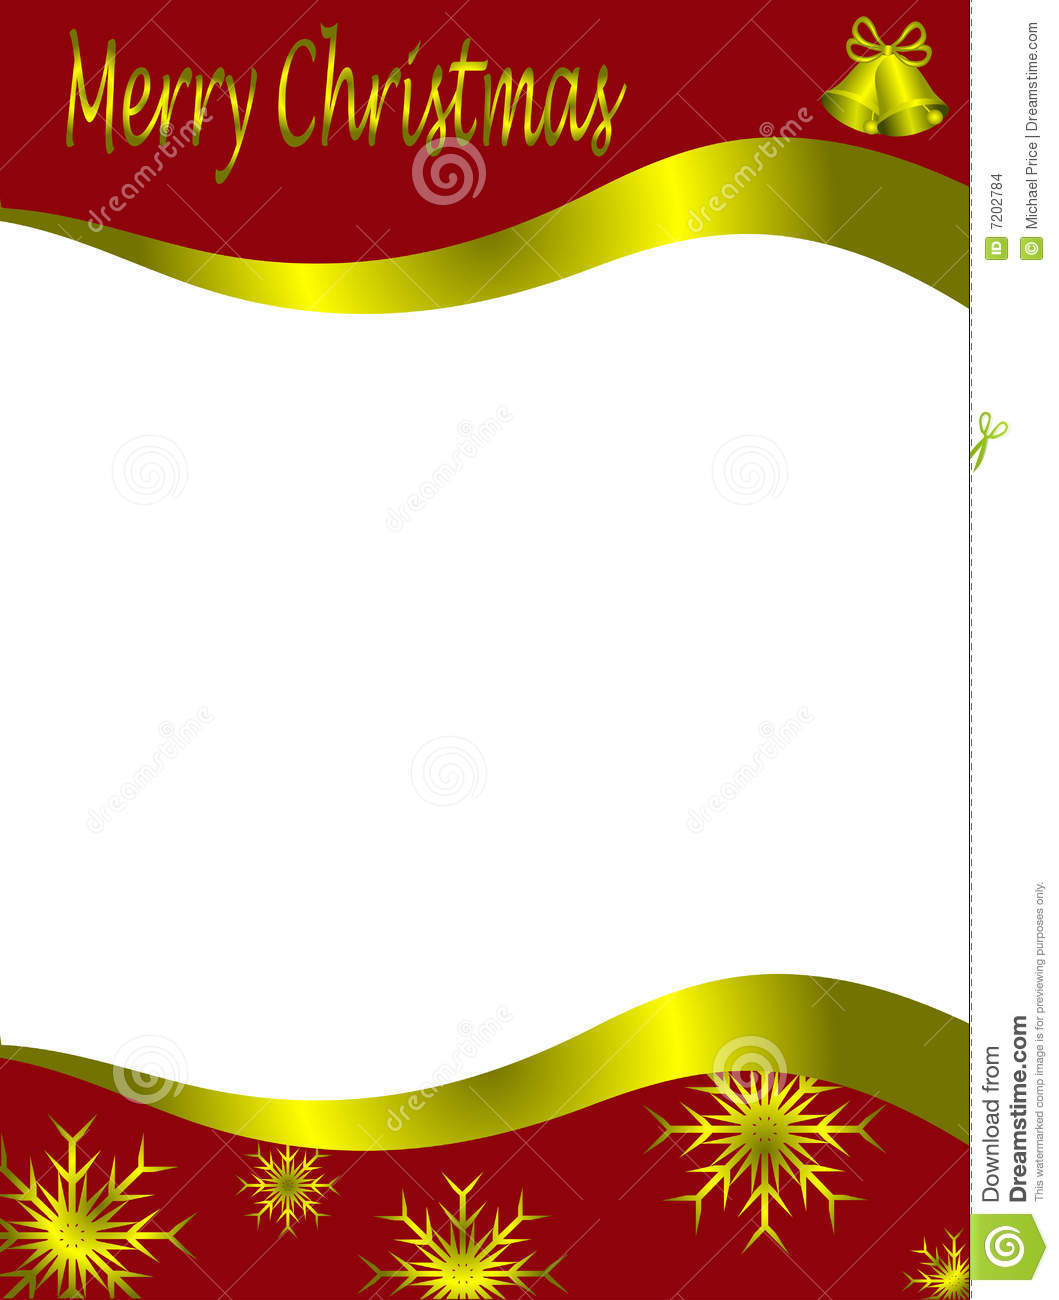 Free Christmas Letter Templates from thumbs.dreamstime.com